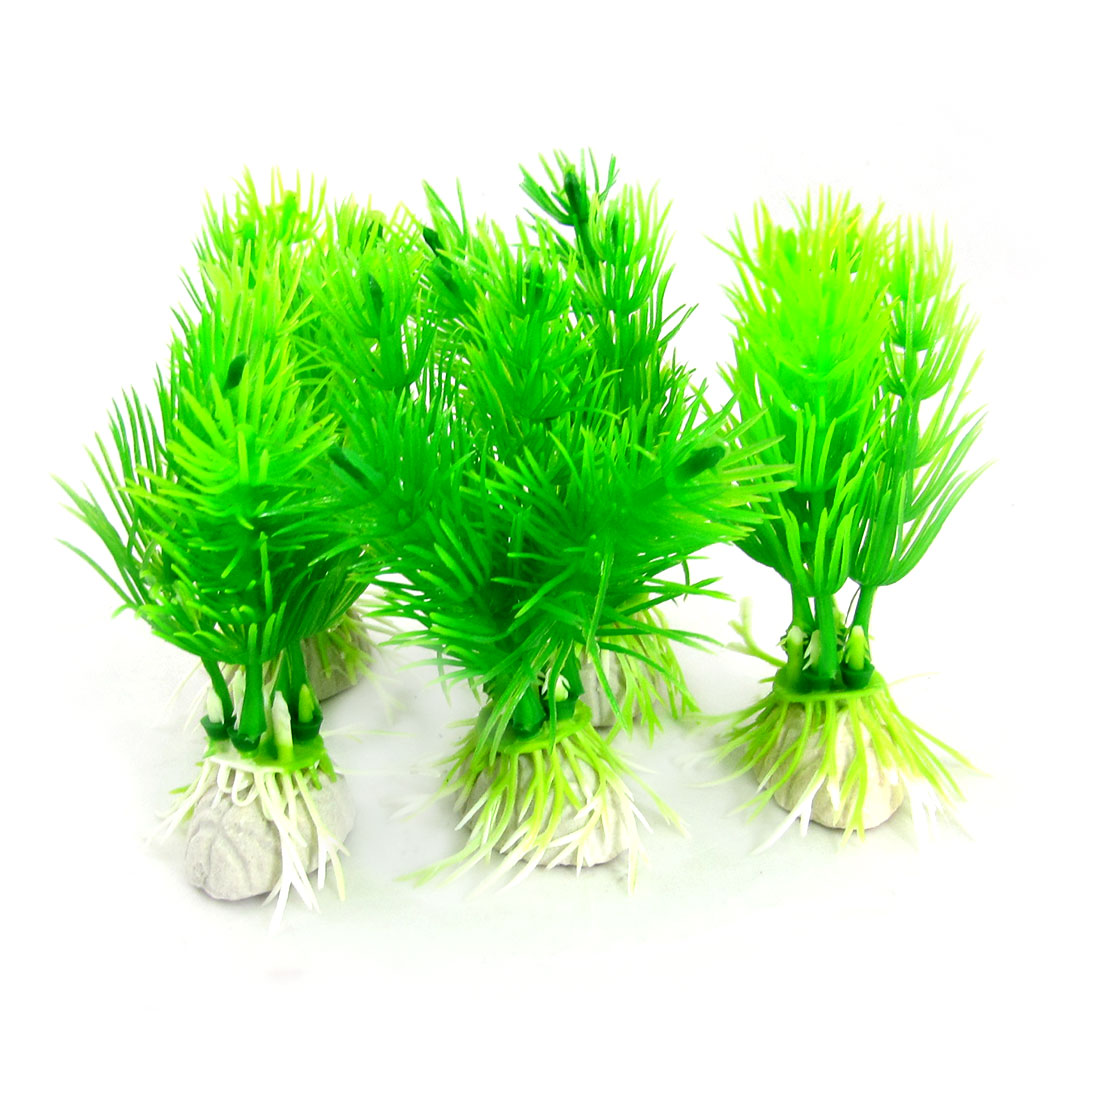 "5 Pcs 3"" Water Dwarf Plastic Plant Decoration Green for Fish Tank"